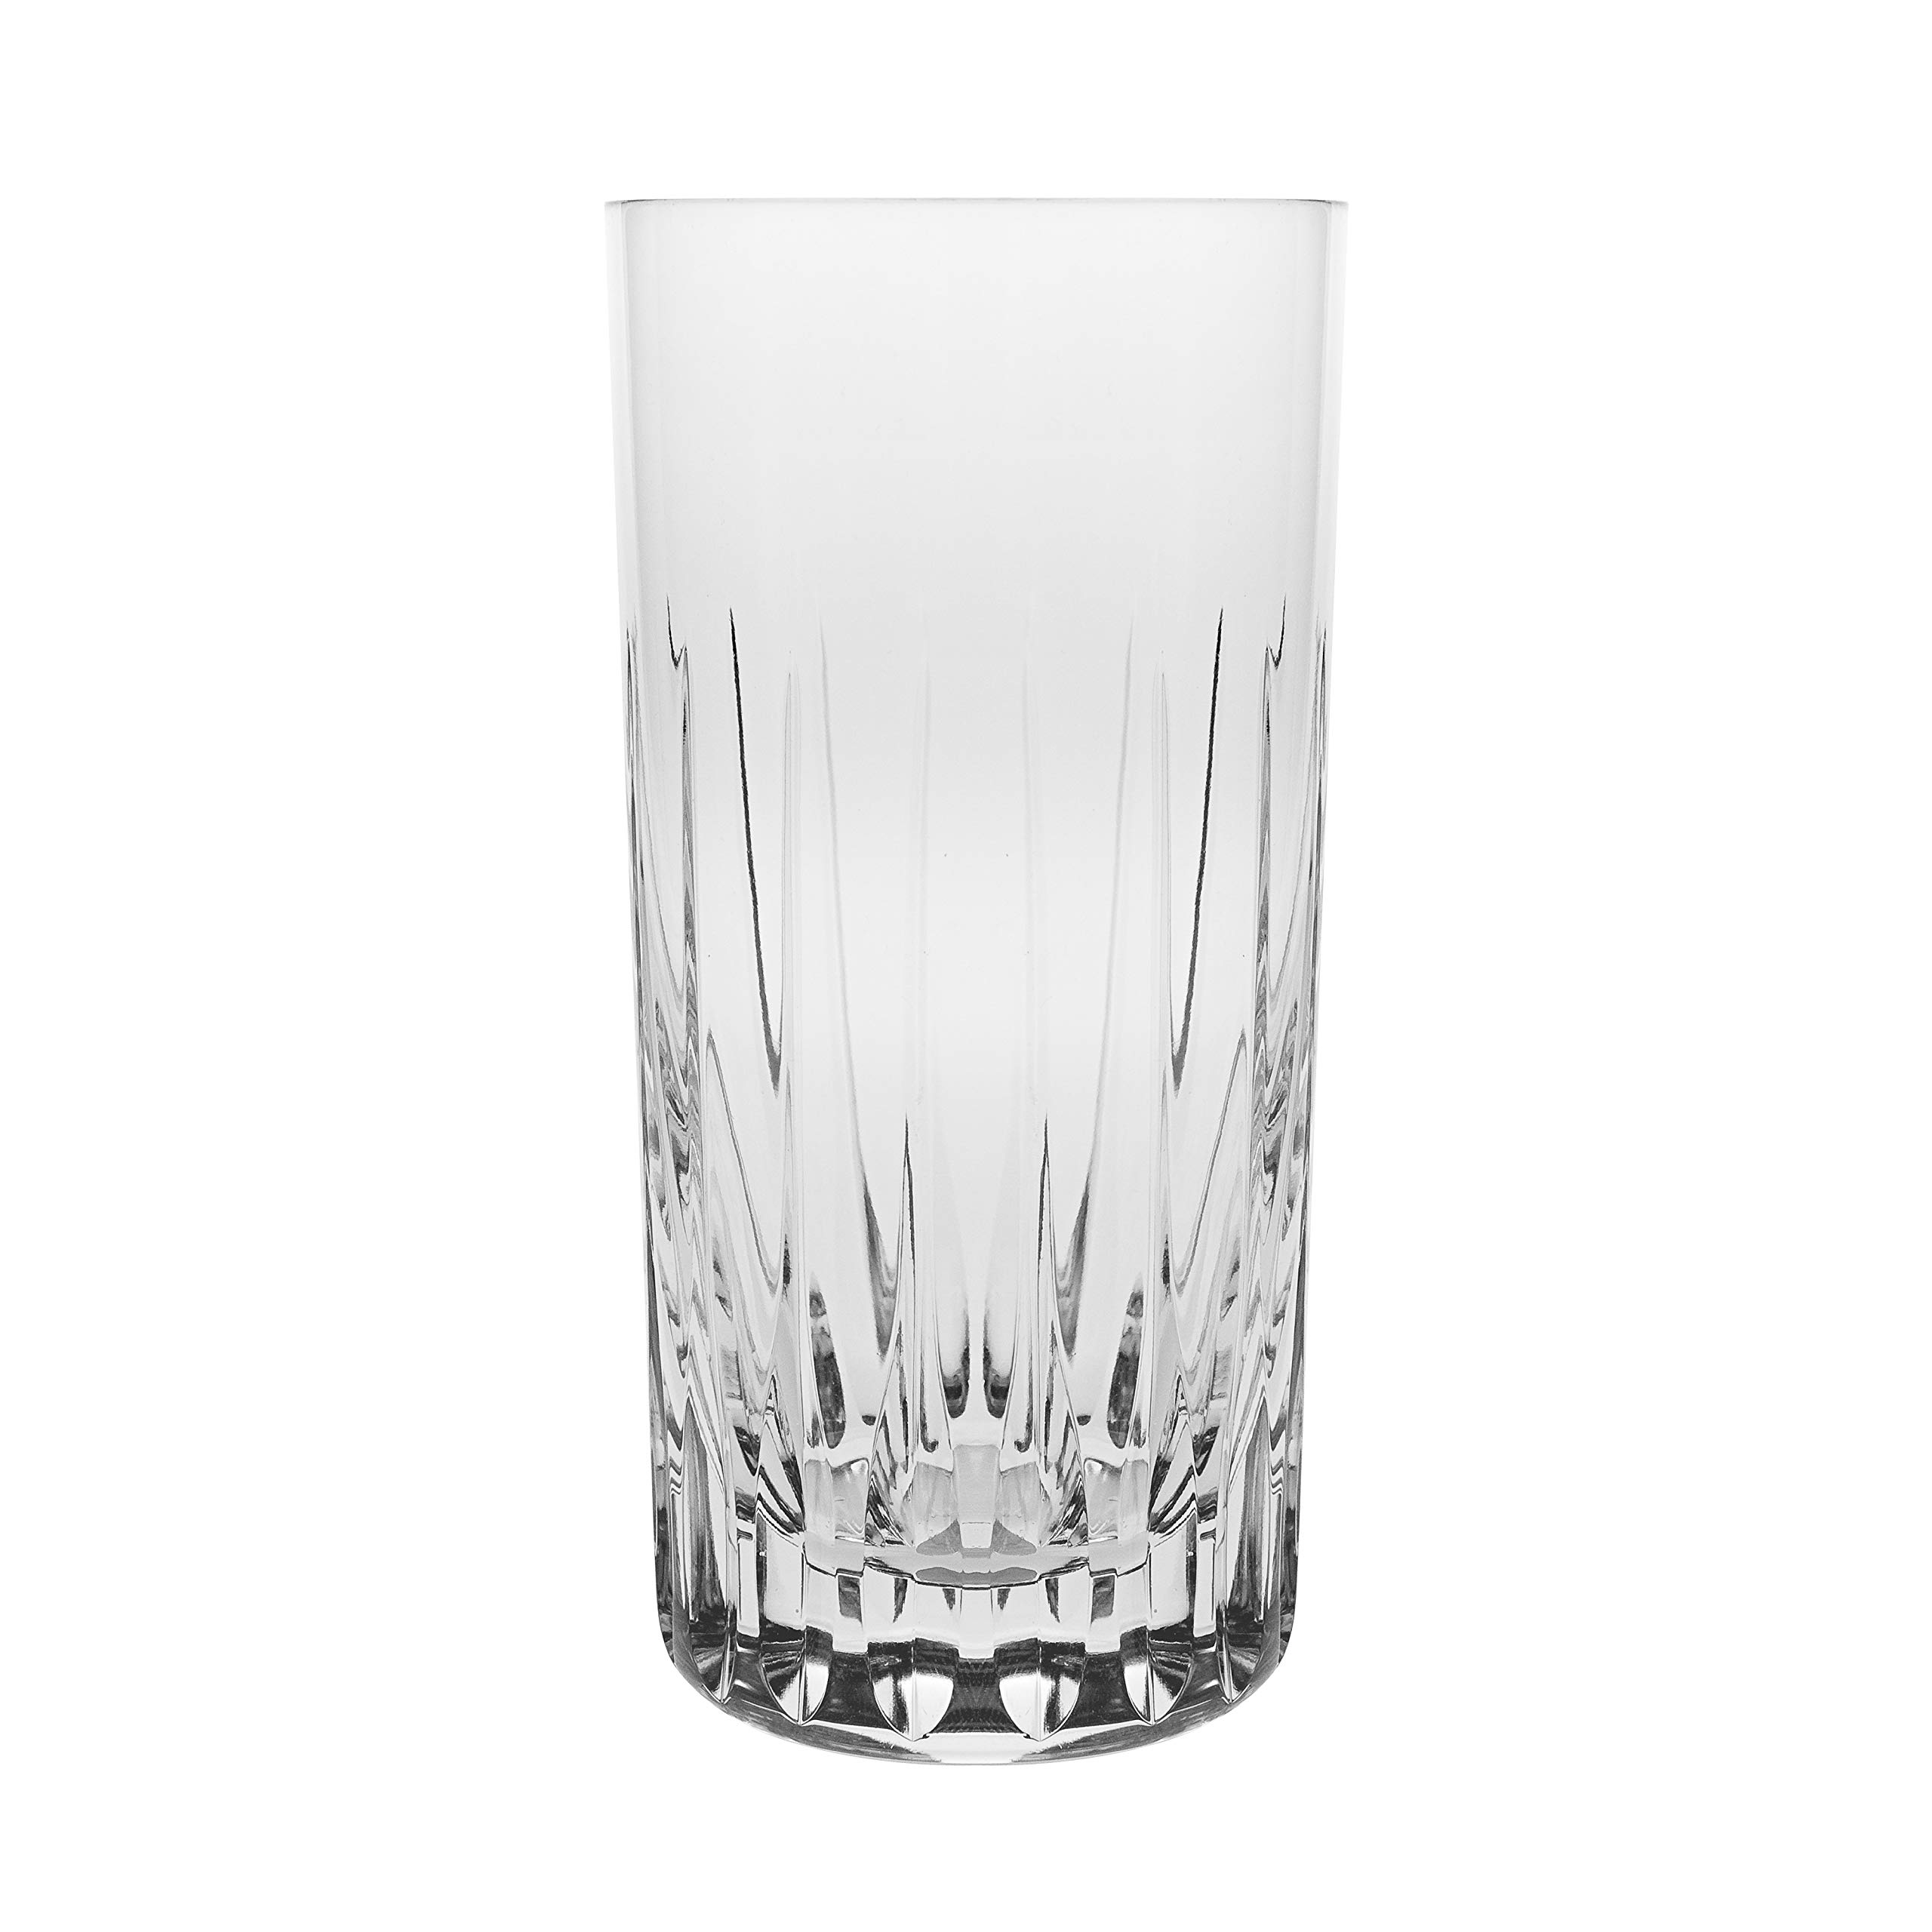 Barski - Set of 6 - Mouth Blown - Hand Cut - Crystal Tumbler Glasses - Highball- Hiball Tumblers - Each Glass is 16 oz. - Uniquely Designed - Made in Europe by Barski (Image #1)